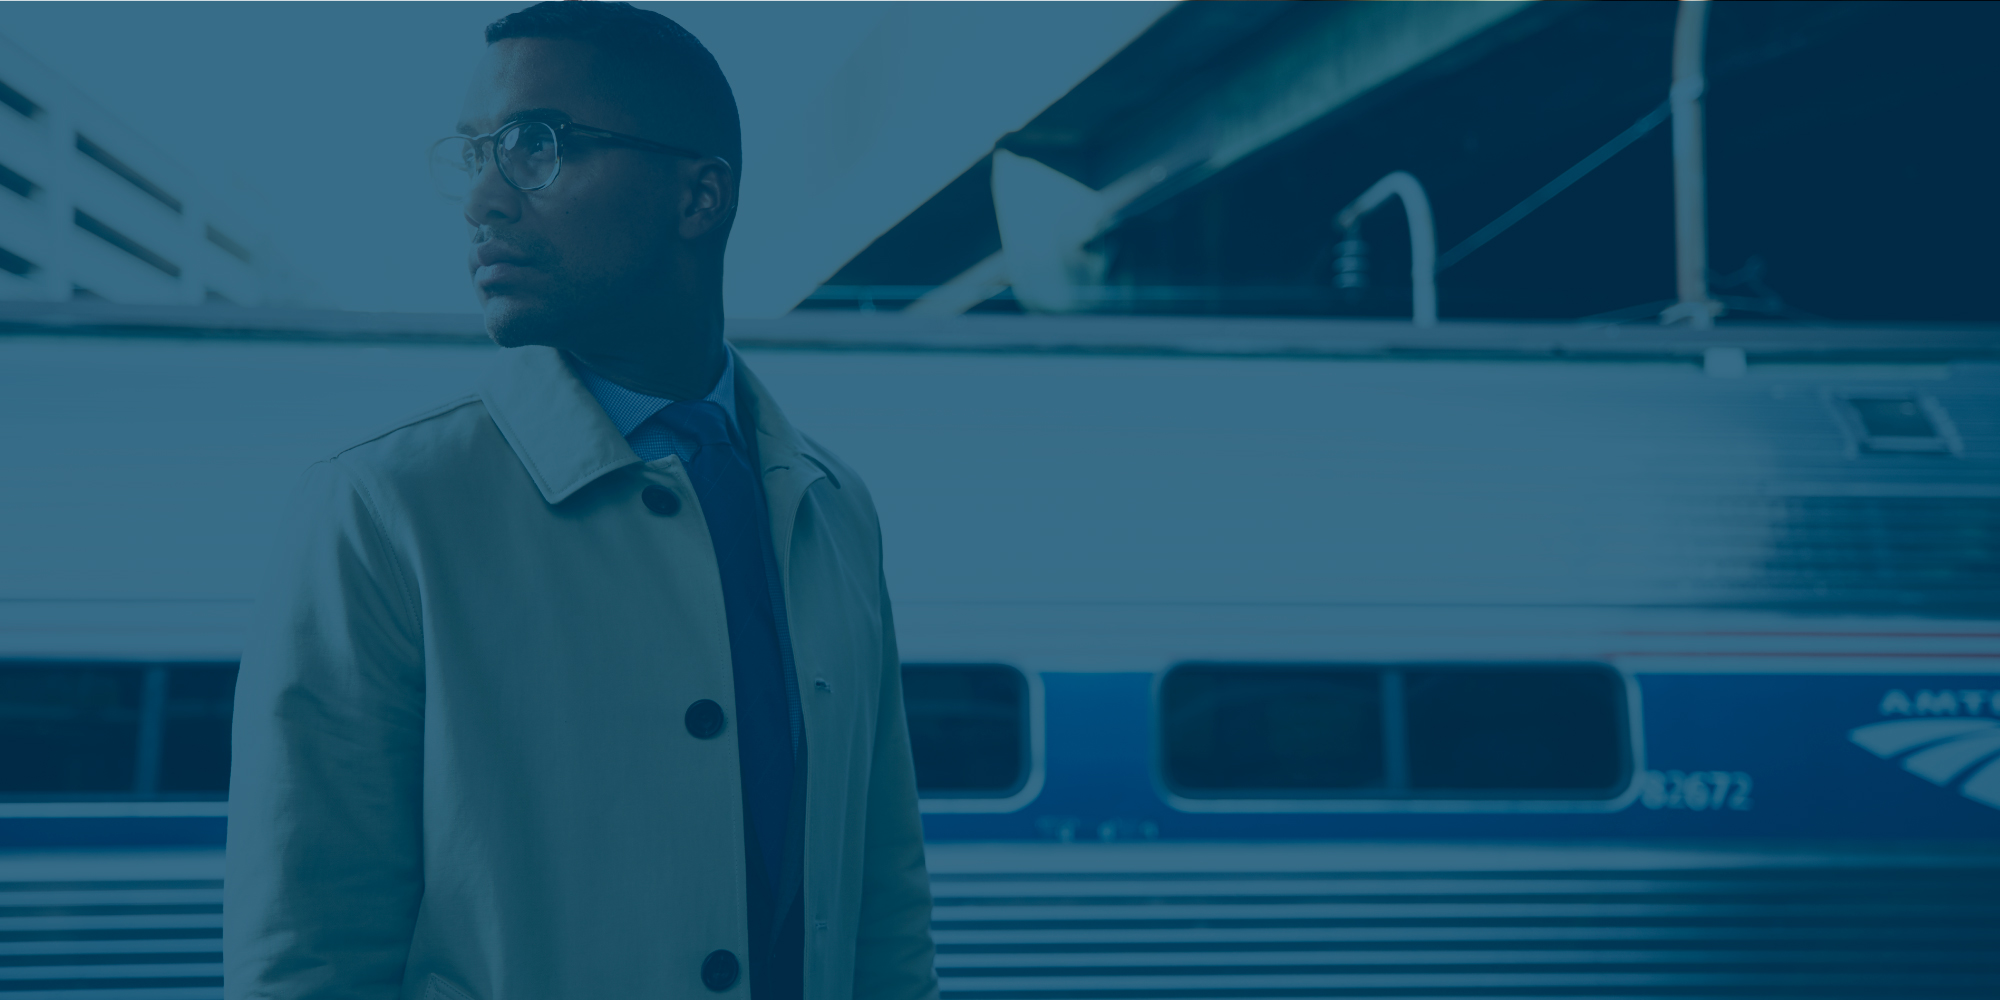 Amtrak Promotion - Amtrak Guest Rewards has seasonal promotions for members to take advantage of. My role was to concept and create multiple different looks across different mediums for these annual promotions.